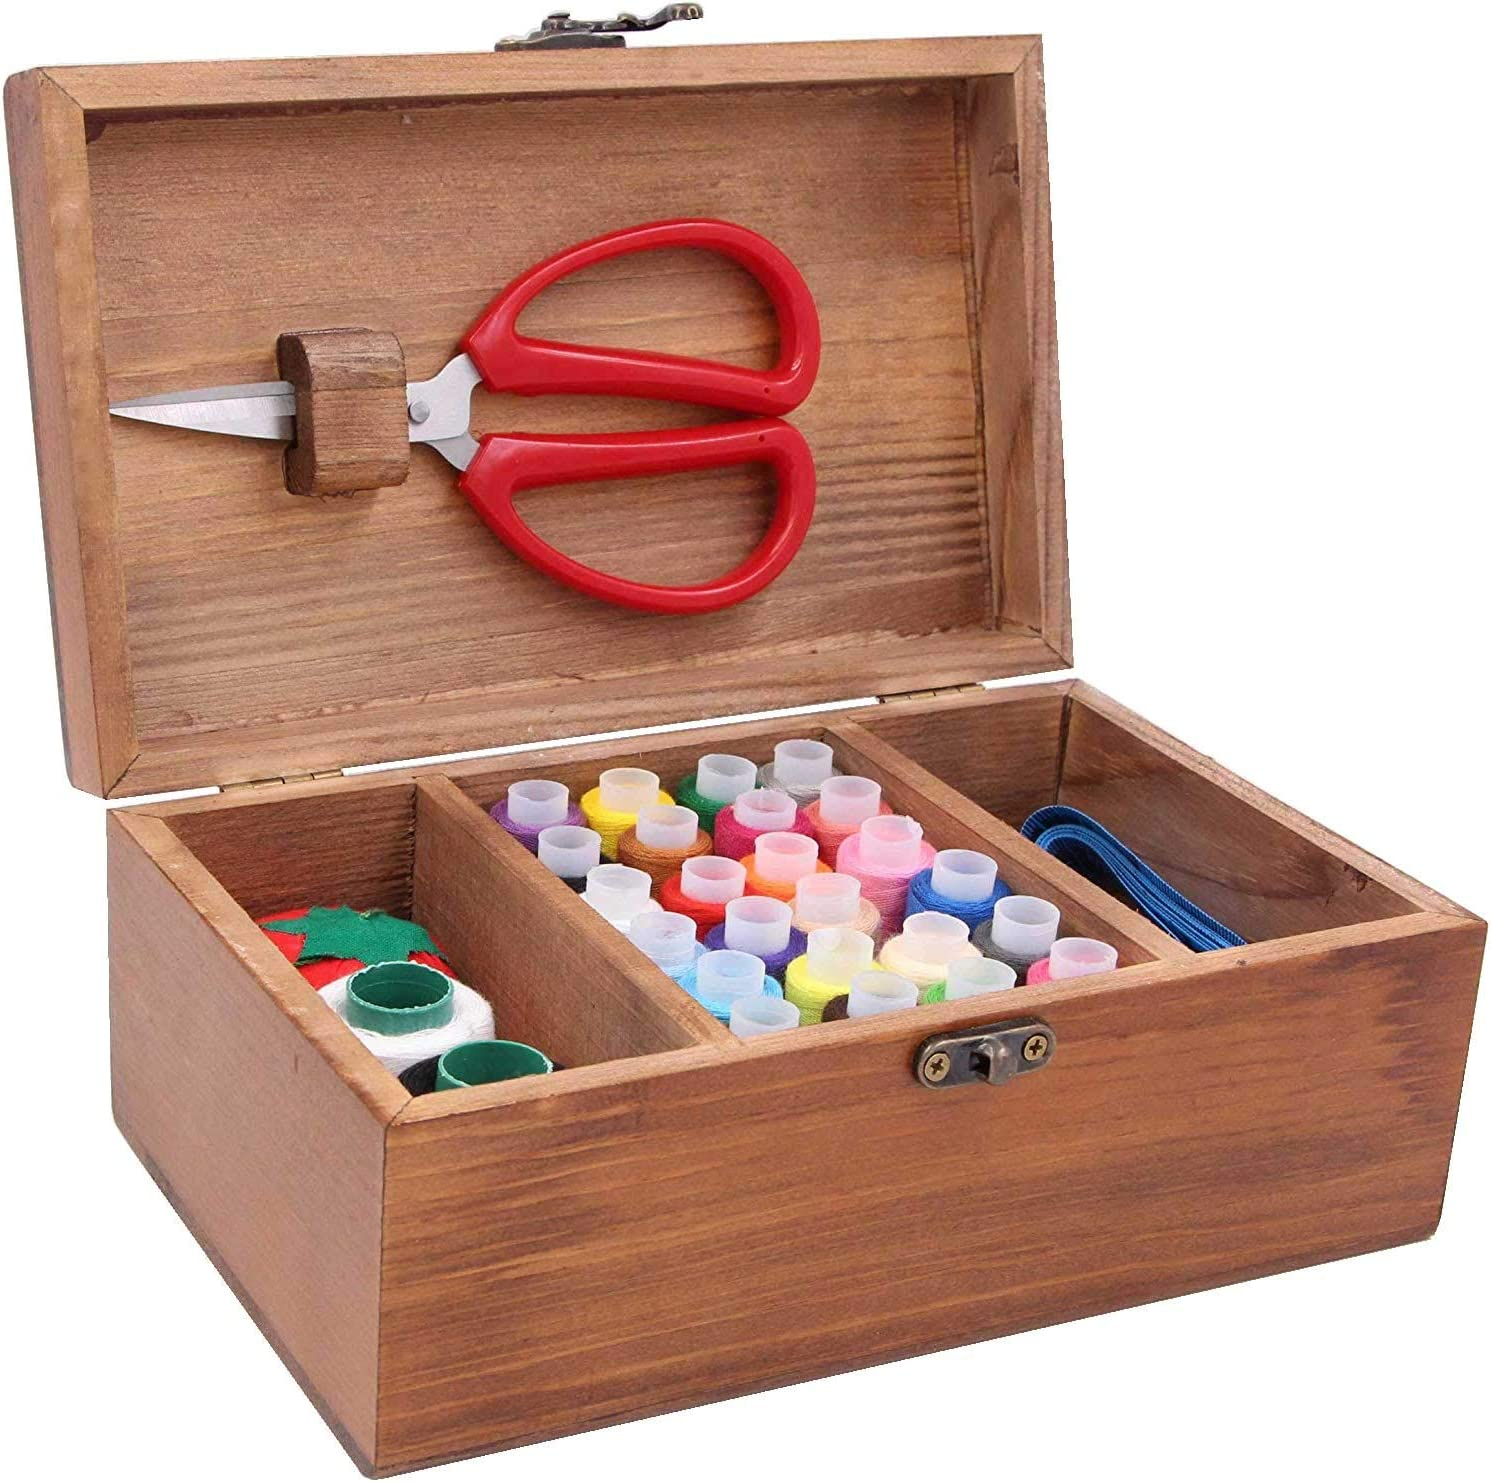 Sales for sale LeBeila Professional Sewing Kit with Directly managed store Box Premium Wooden